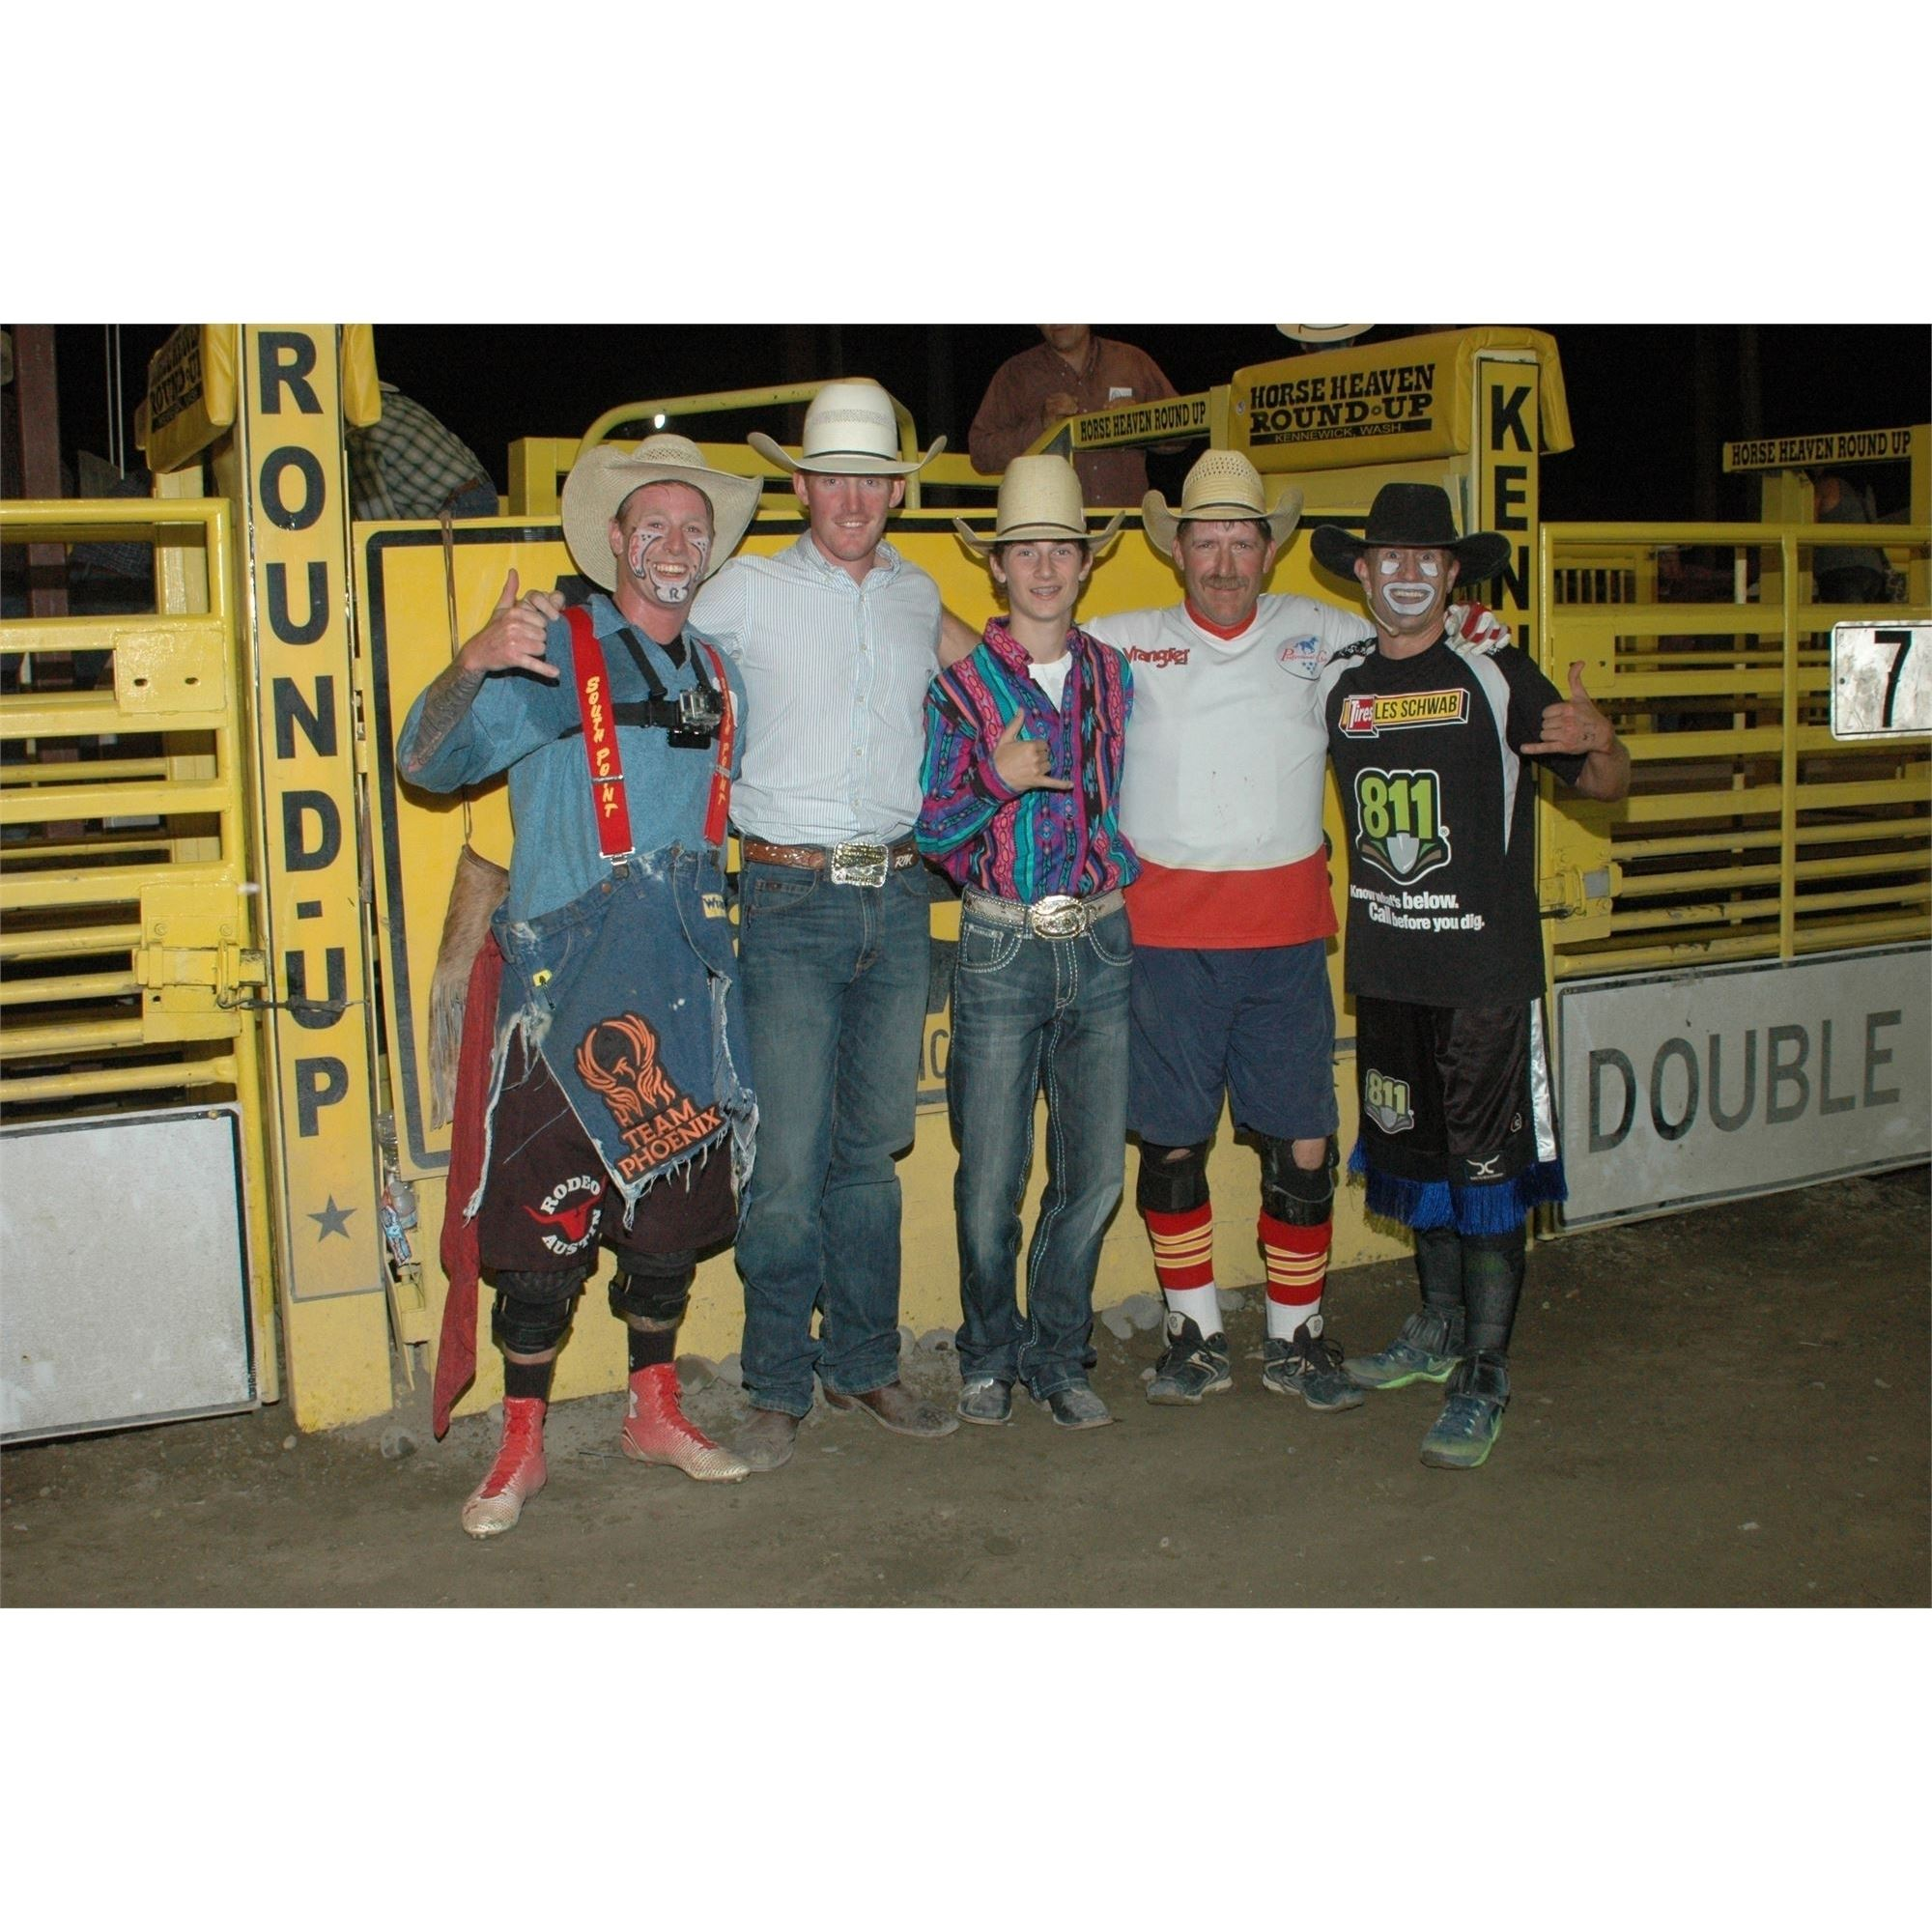 2018 Kennewick Rodeo Crew